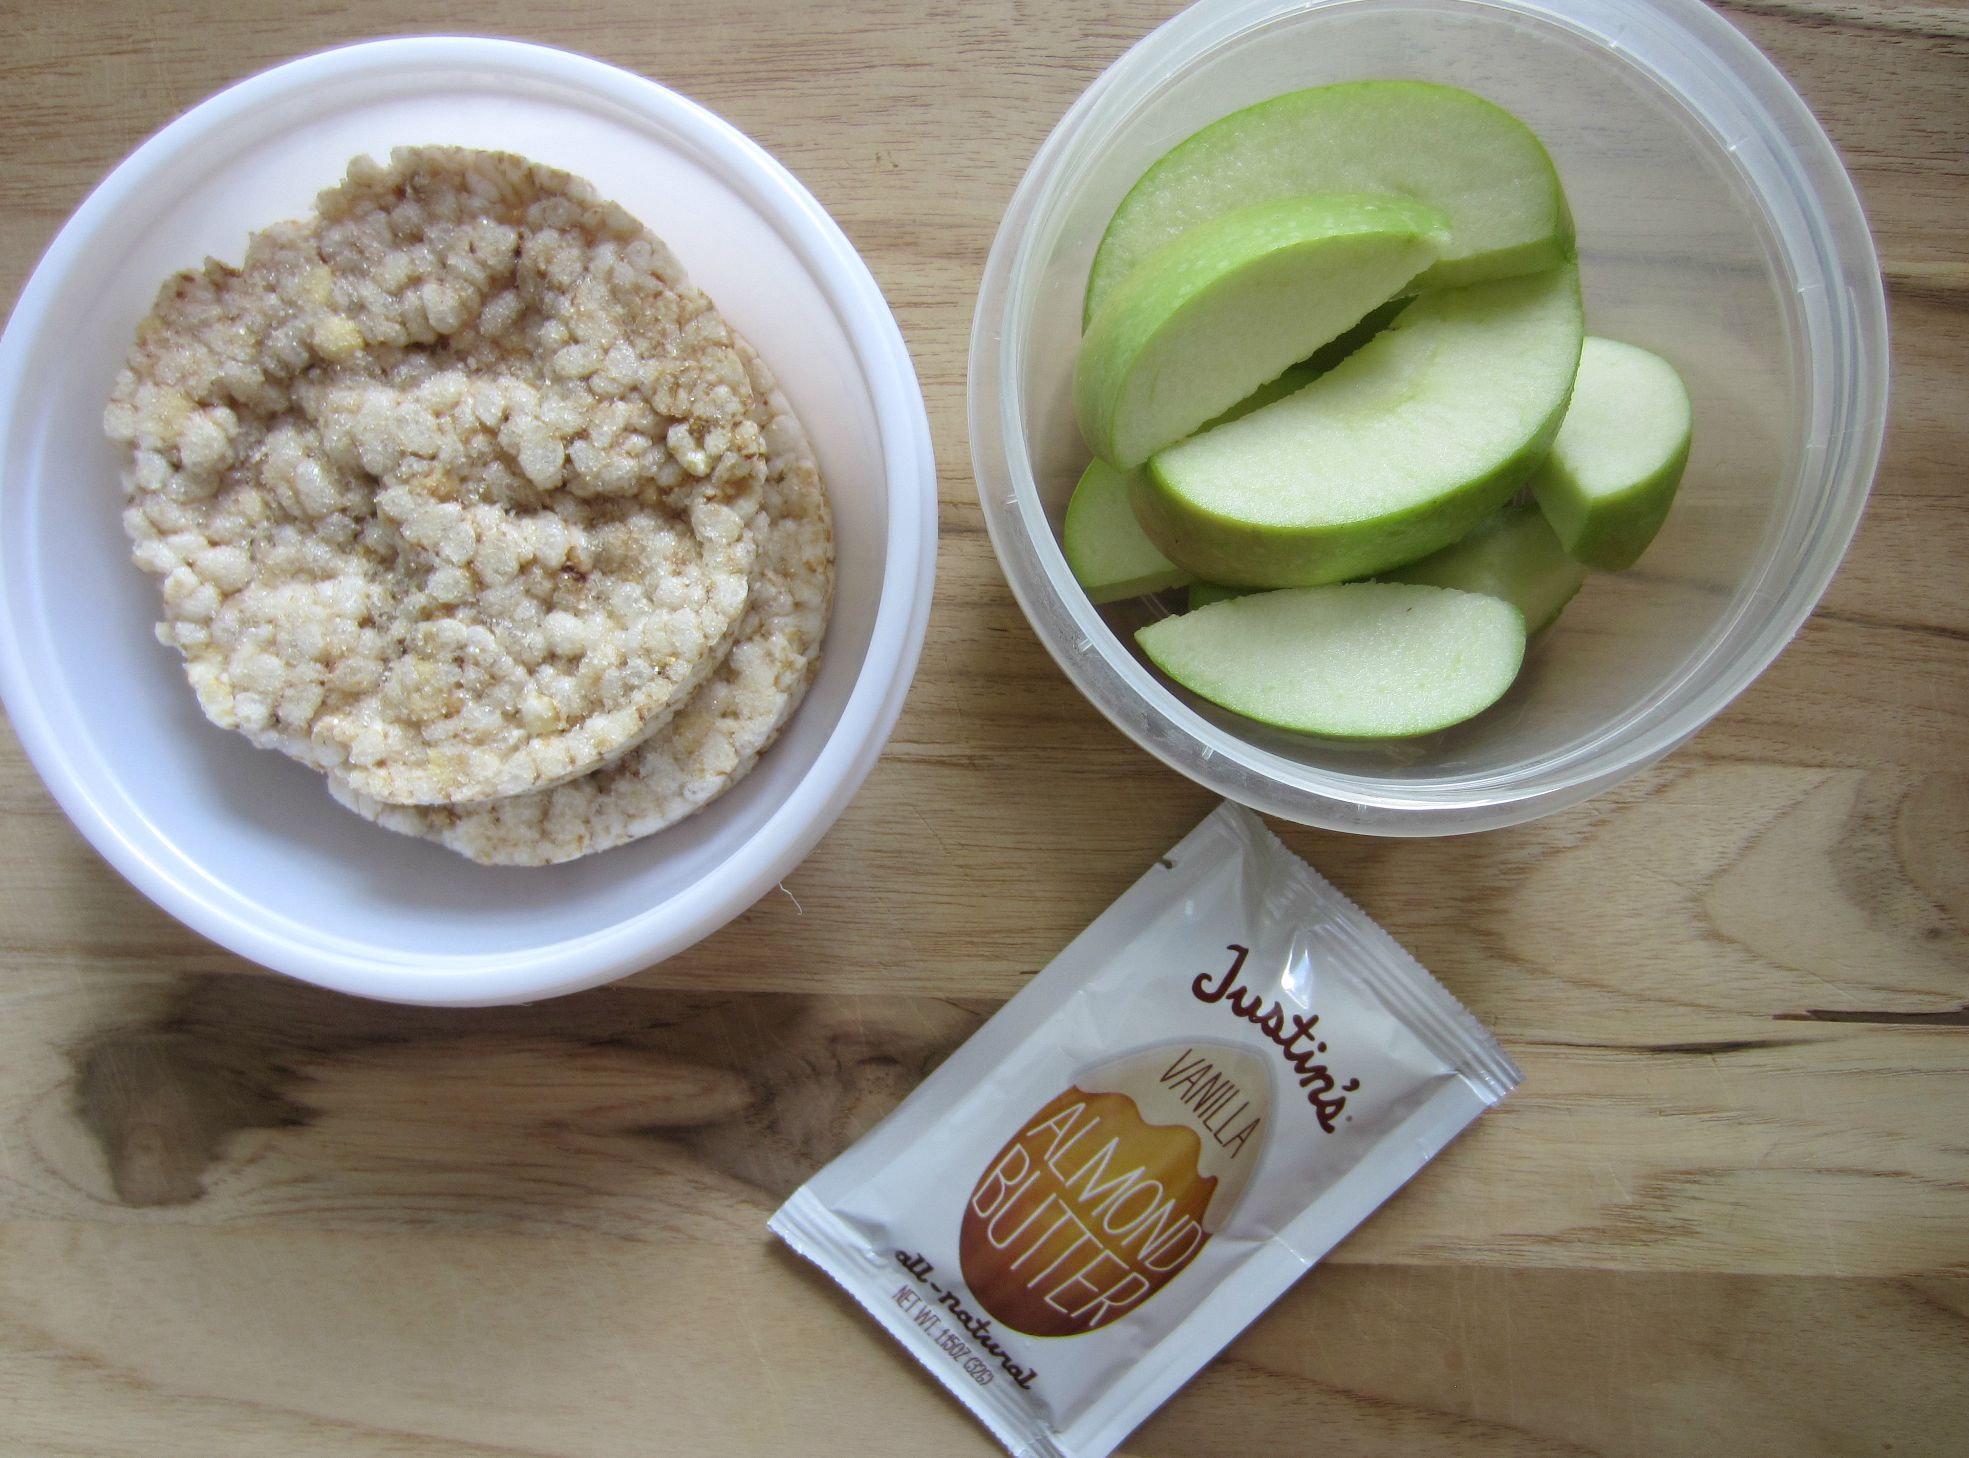 rice cakes and apples with almond butter - healthy snack